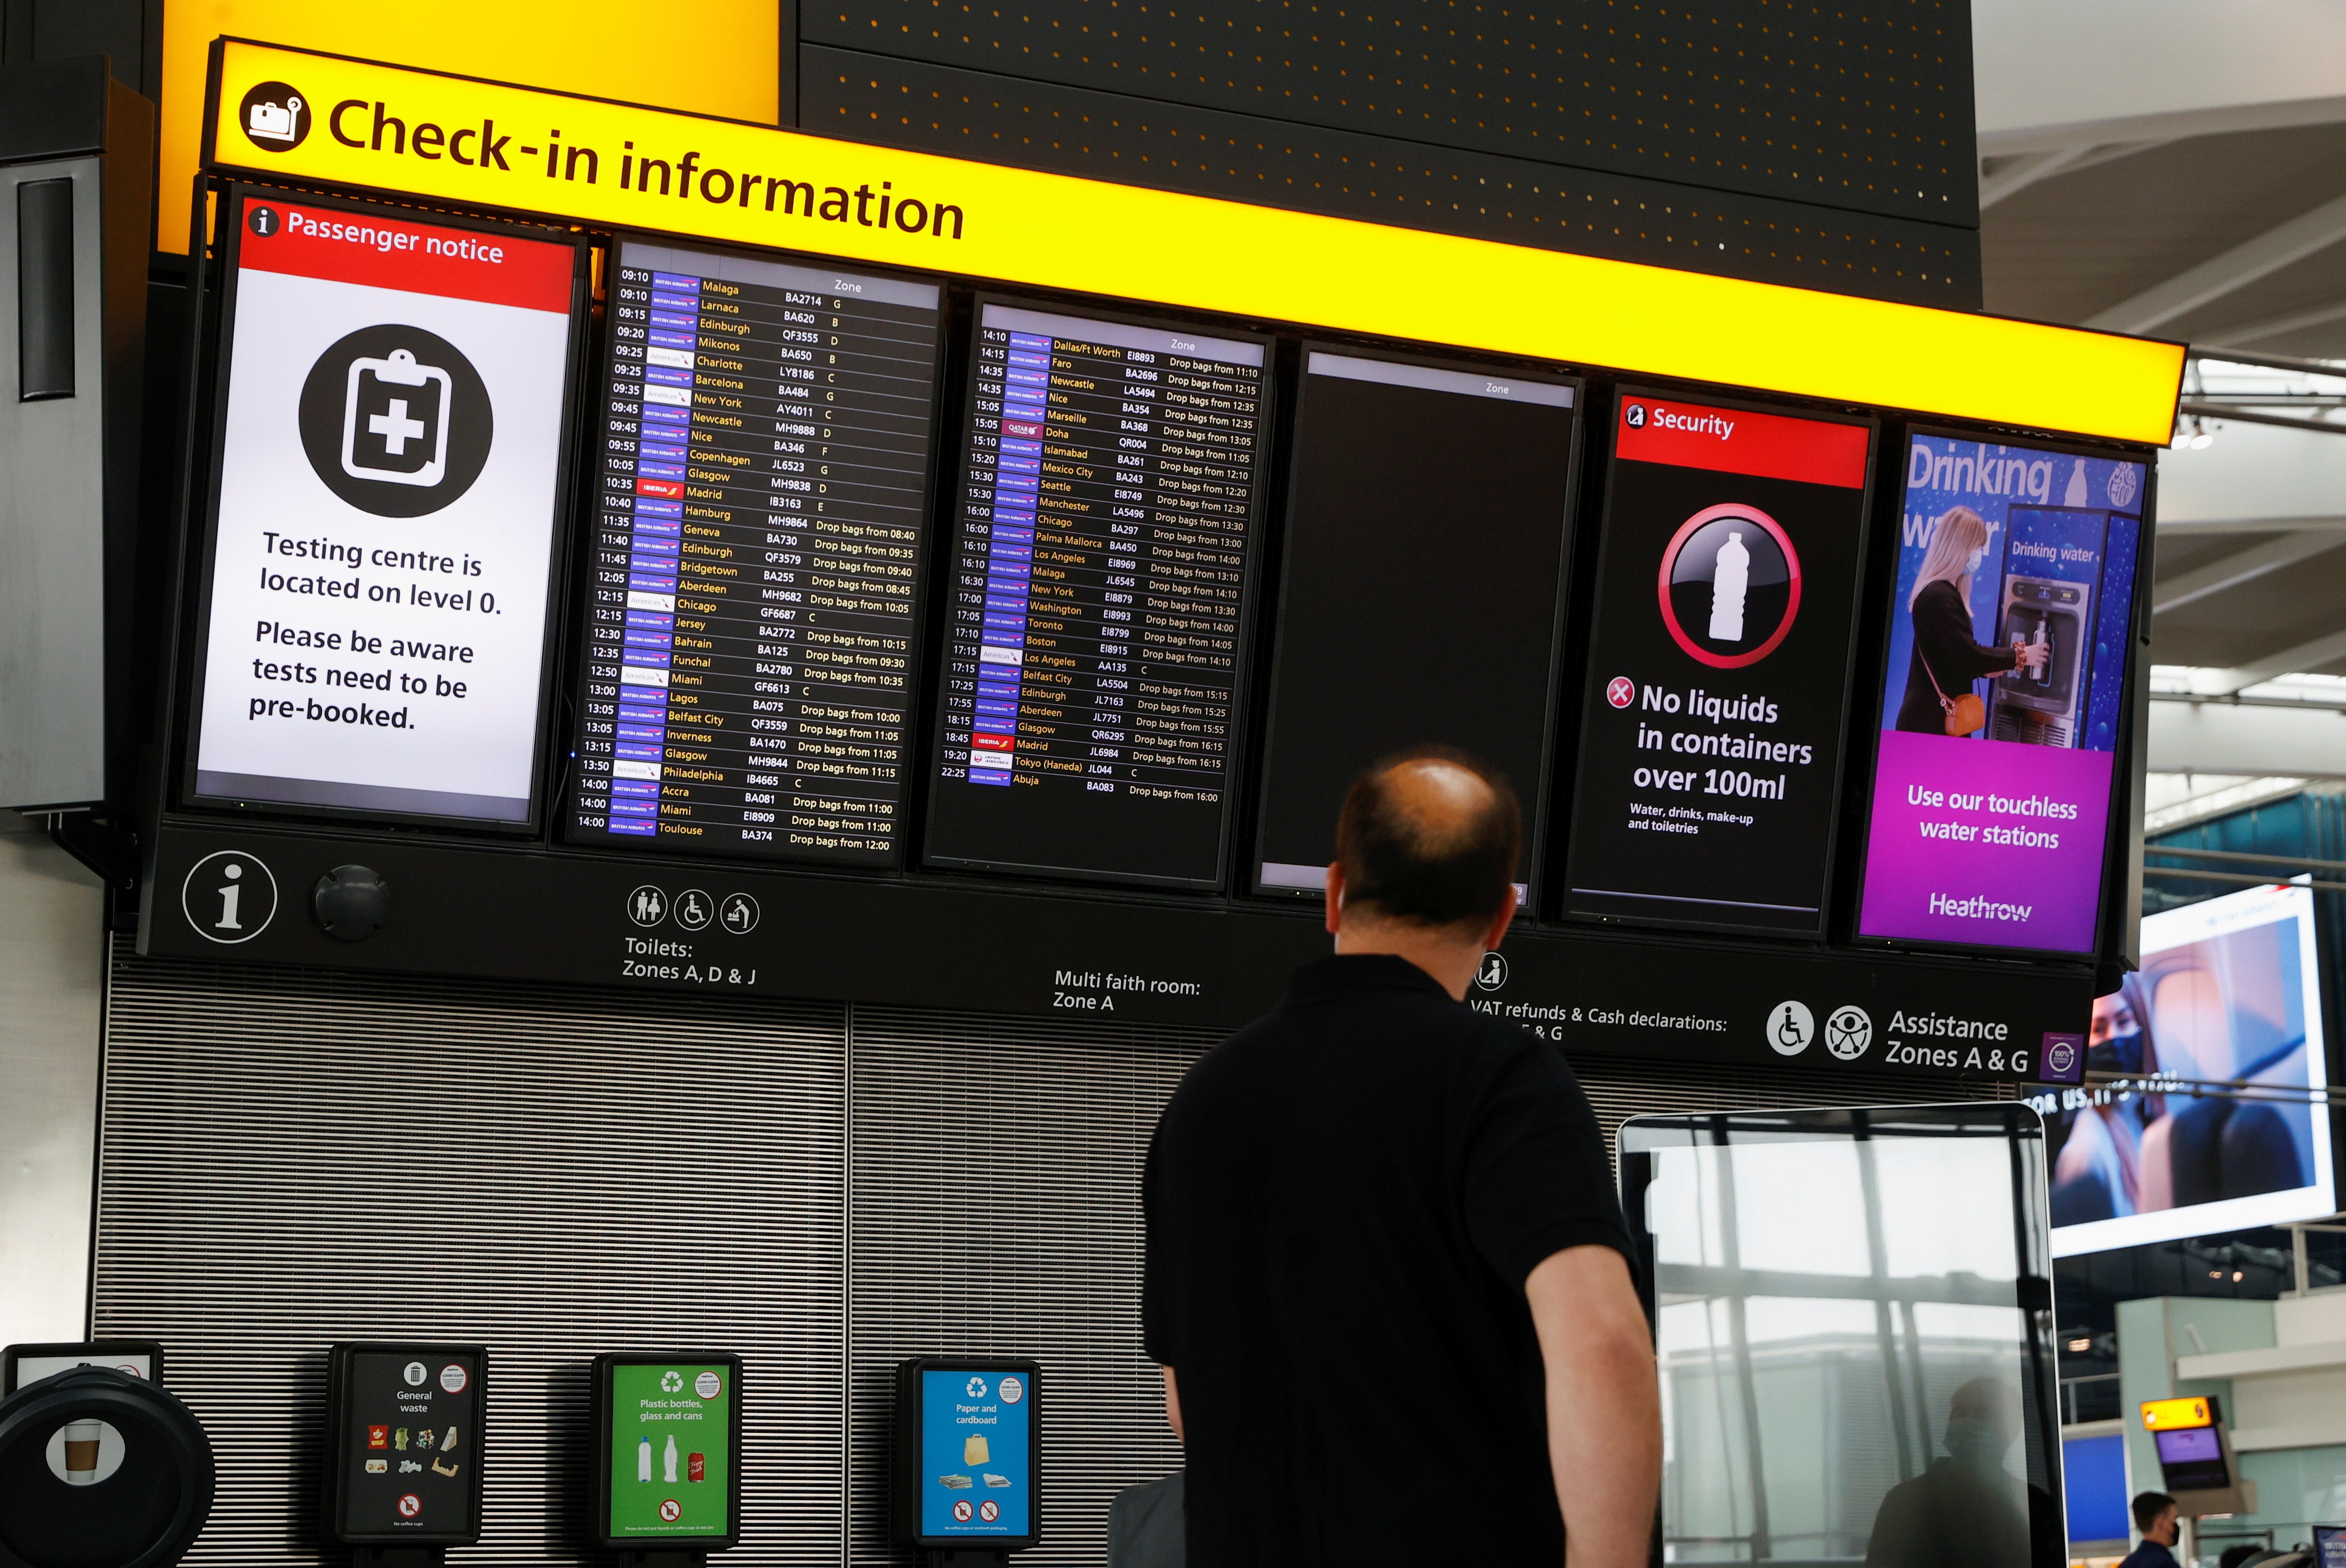 A man looks at a check-in information board in the departures area of Terminal 5 at Heathrow Airport in London, Britain, May 17, 2021. REUTERS/John Sibley